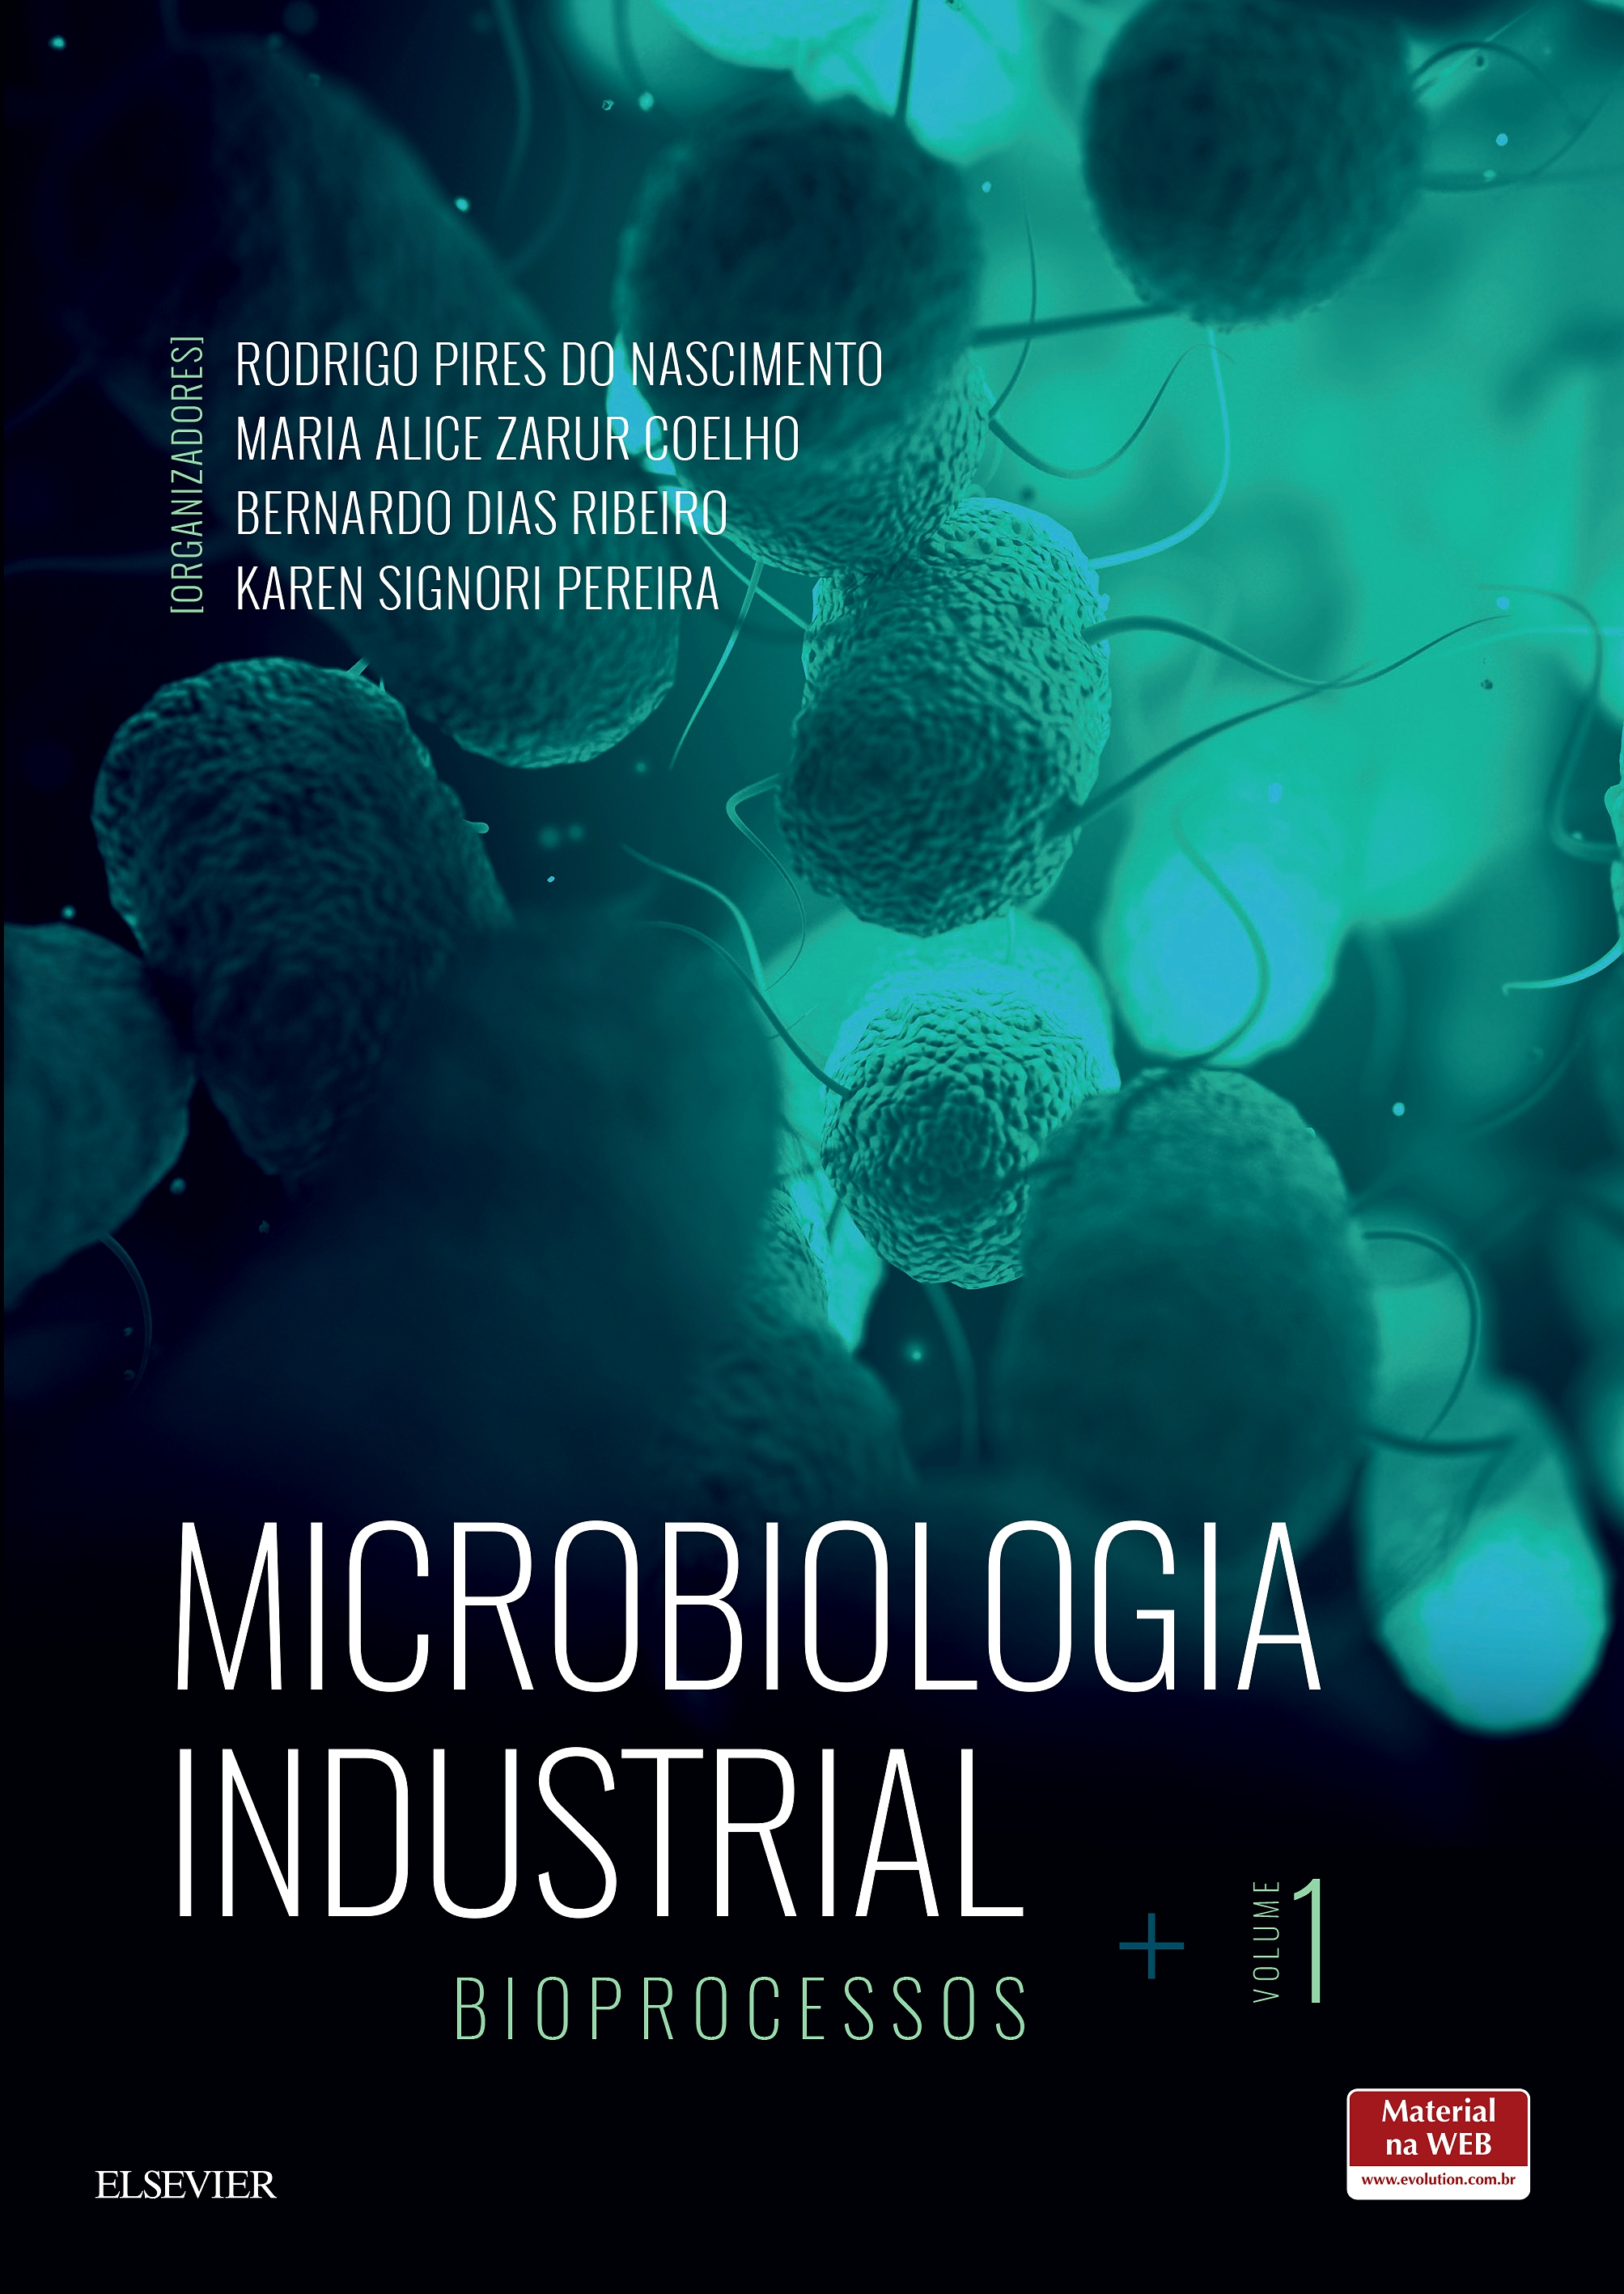 Microbiologia Industrial